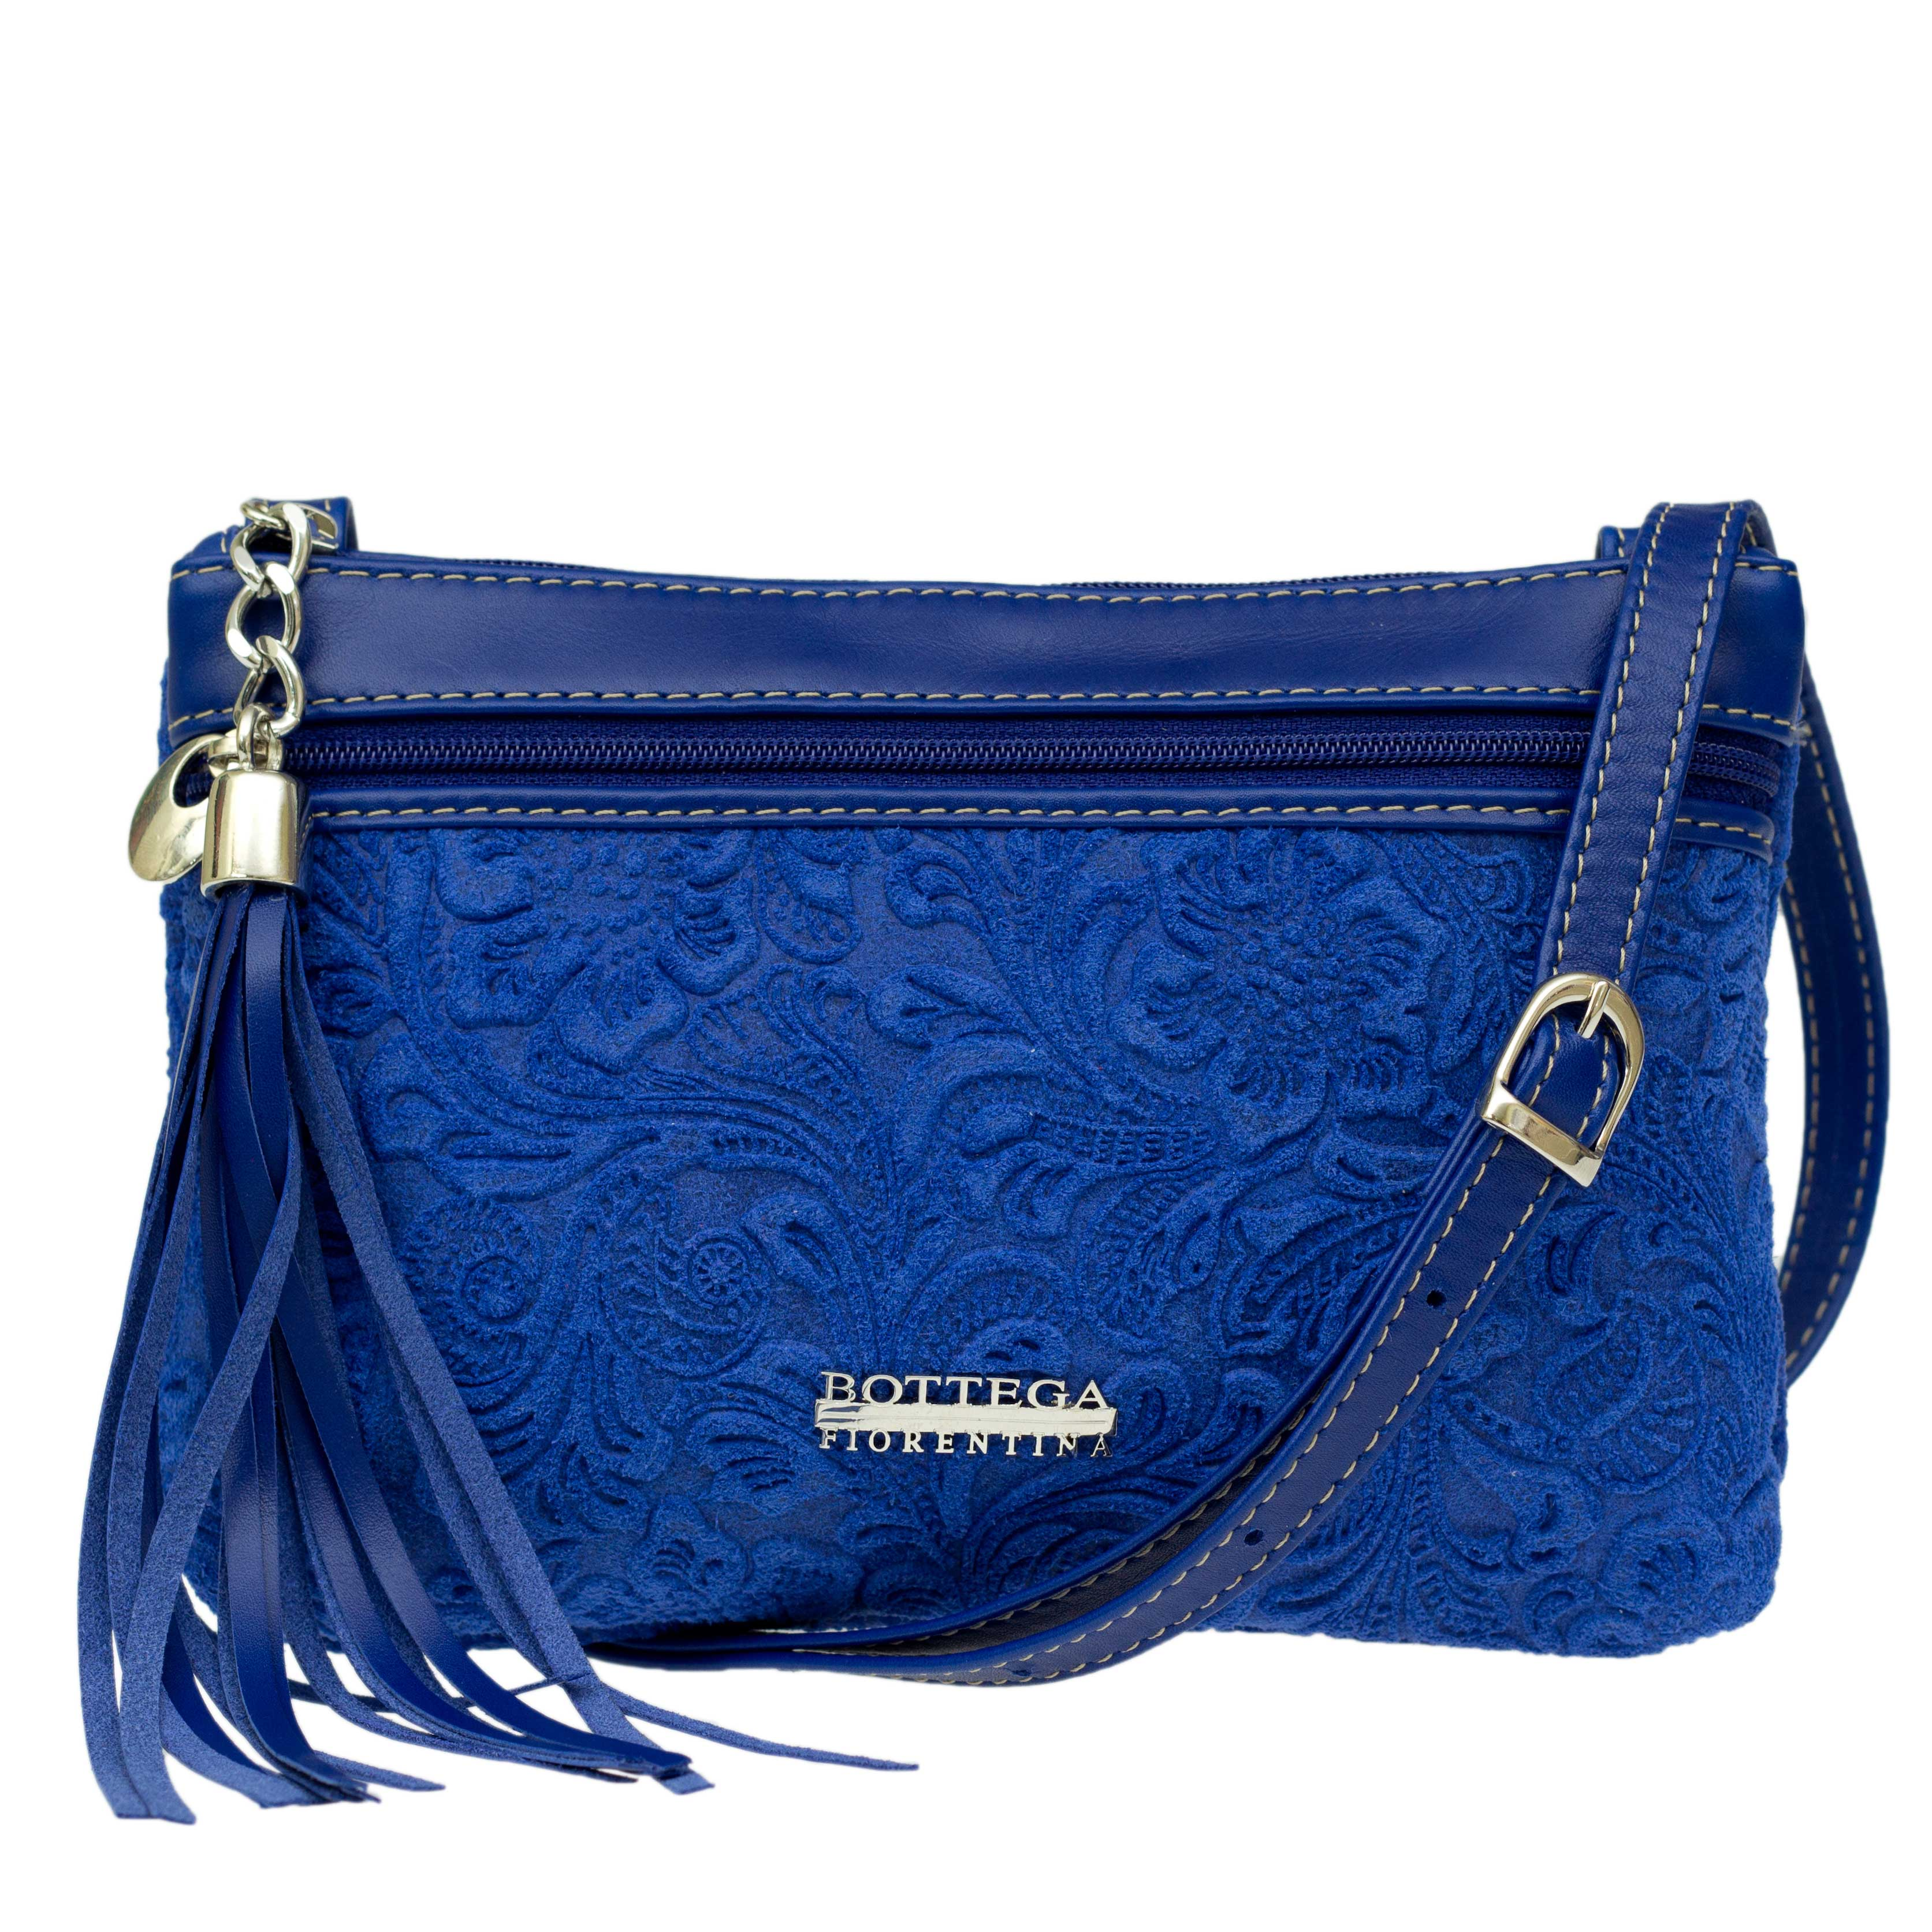 Bottega Fiorentina Italian Made Blue Floral Embossed Leather Crossbody Bag